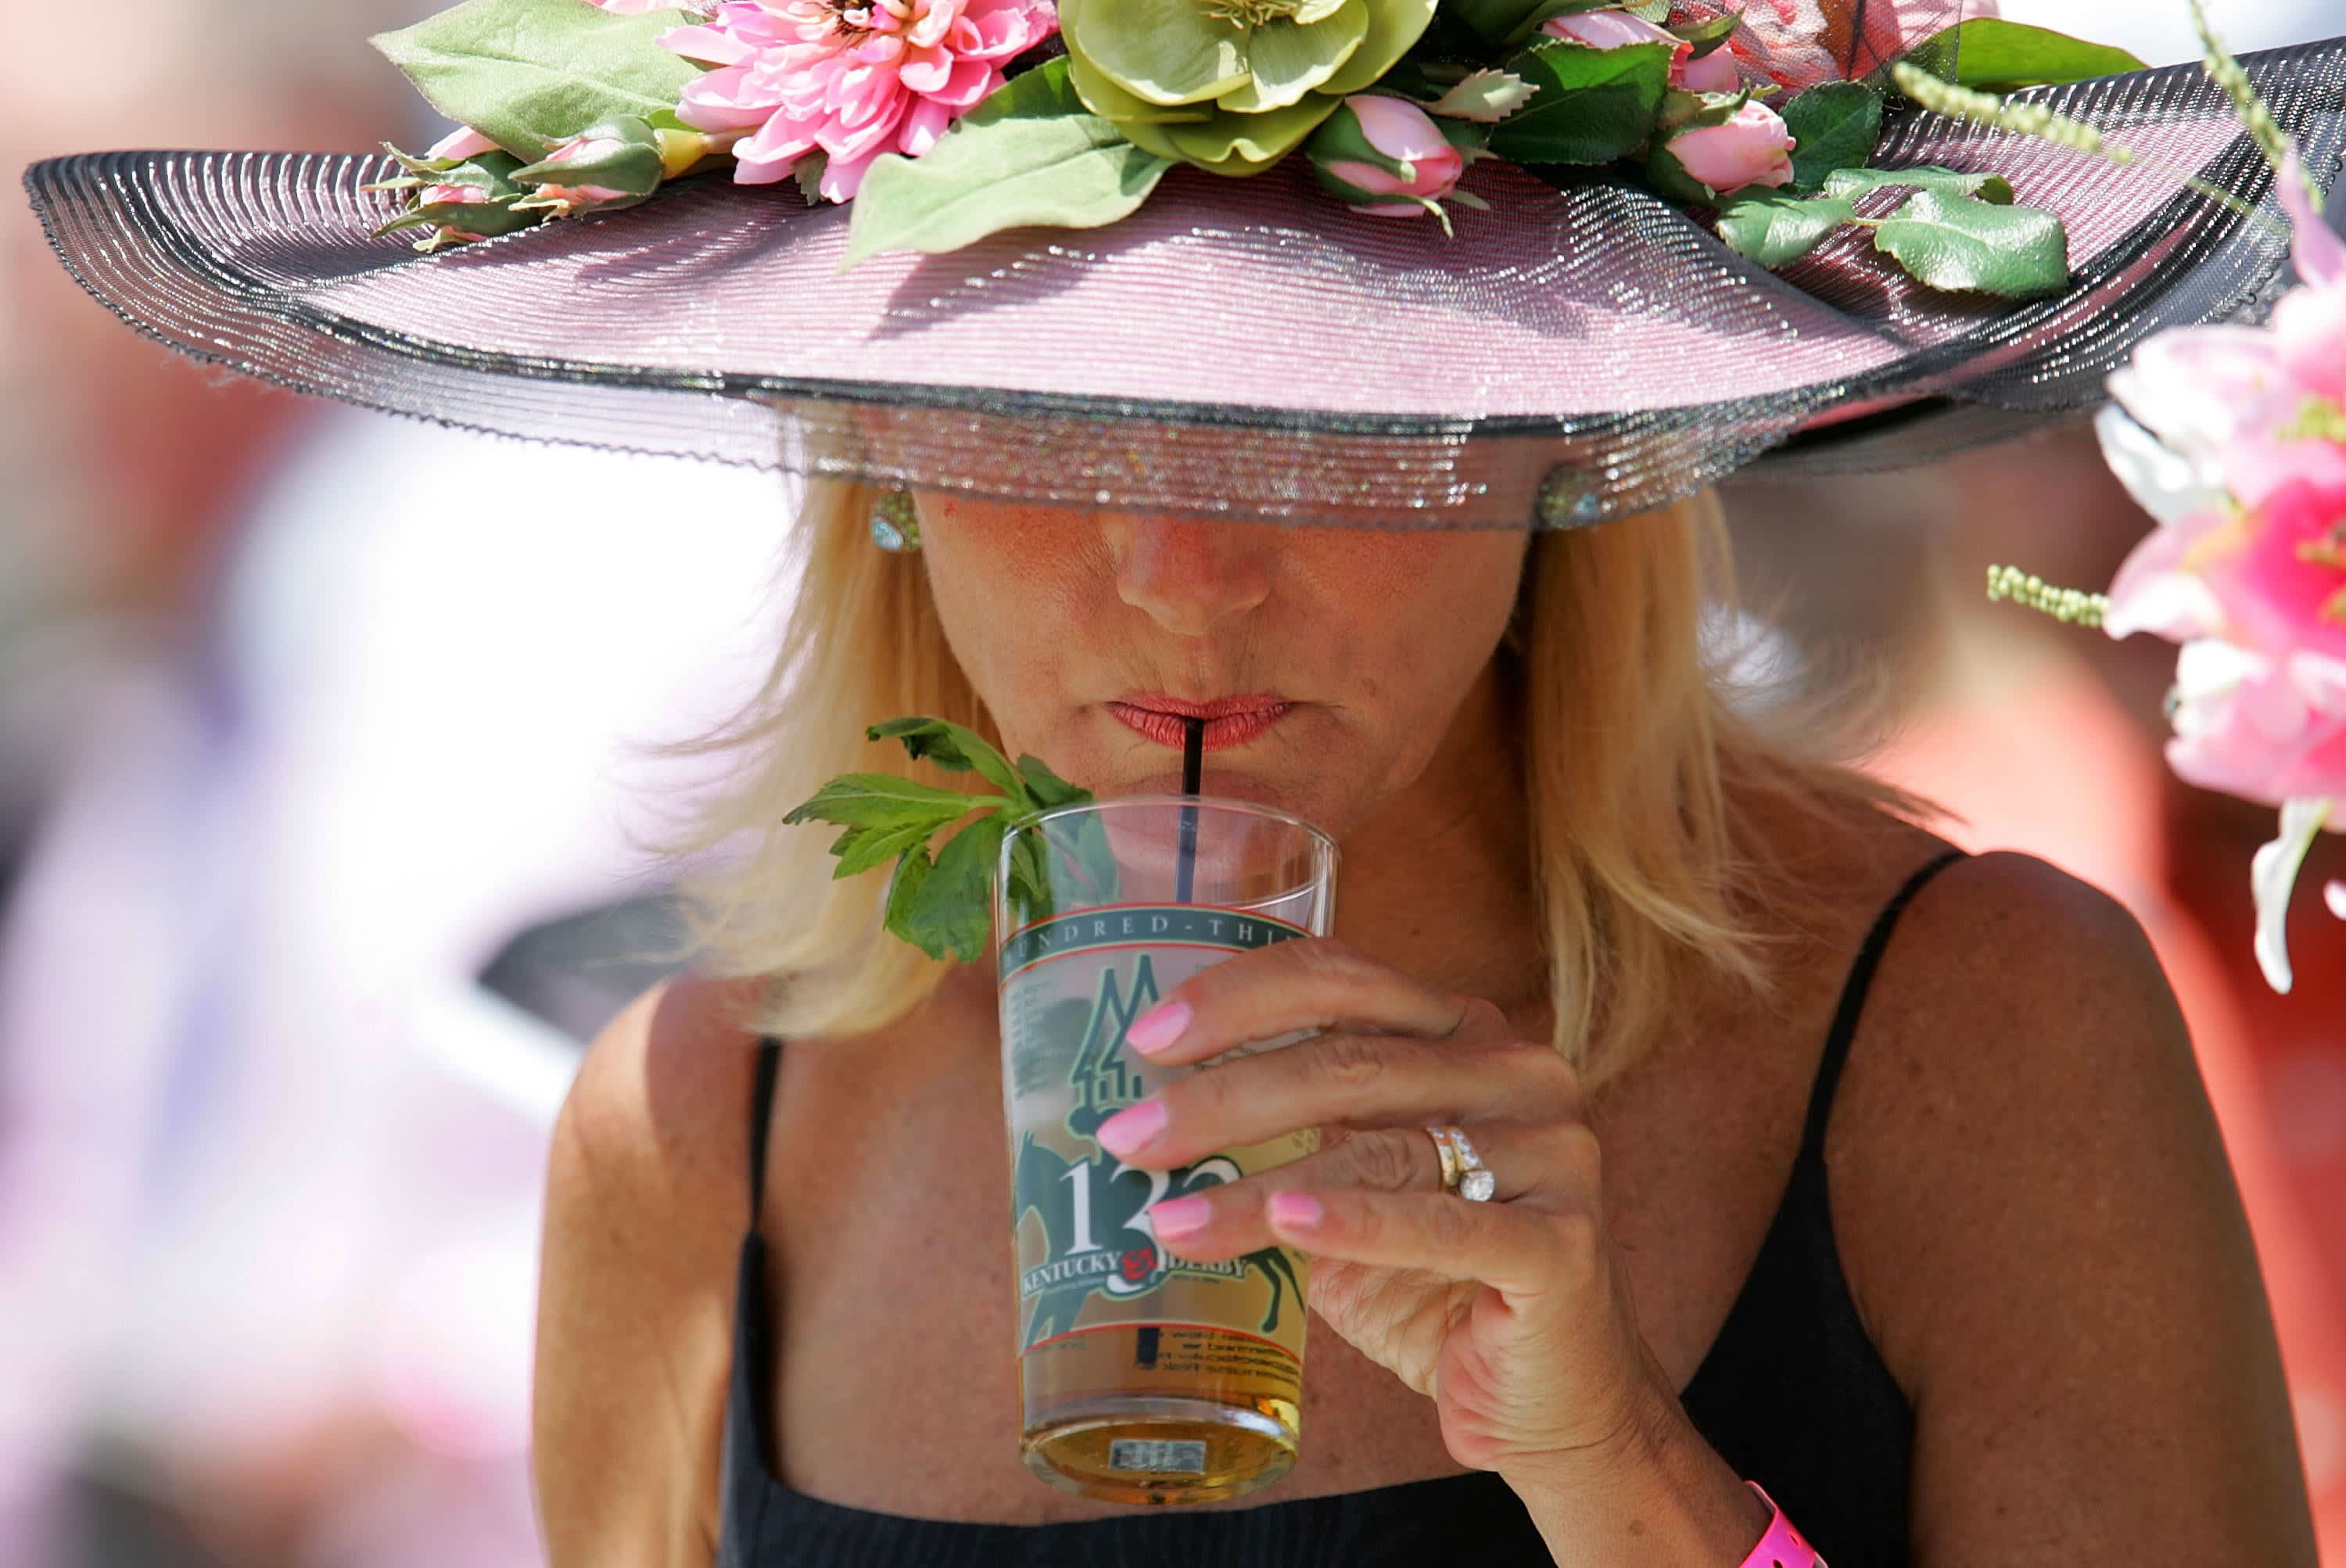 Here's what you get if you buy a $1,000 mint julep at the Kentucky Derby